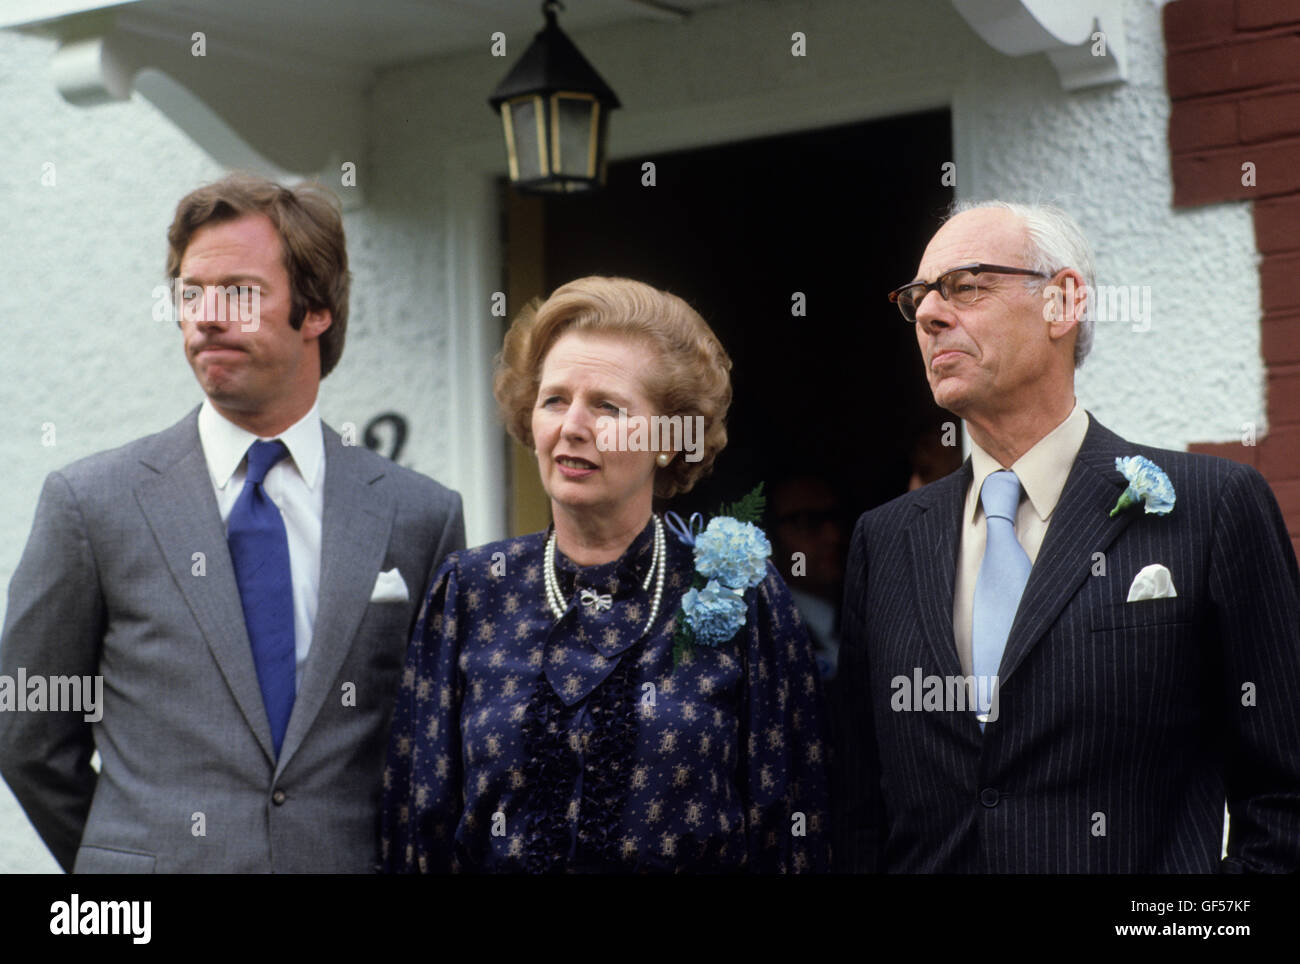 Mark Thatcher High Resolution Stock Photography and Images - Alamy